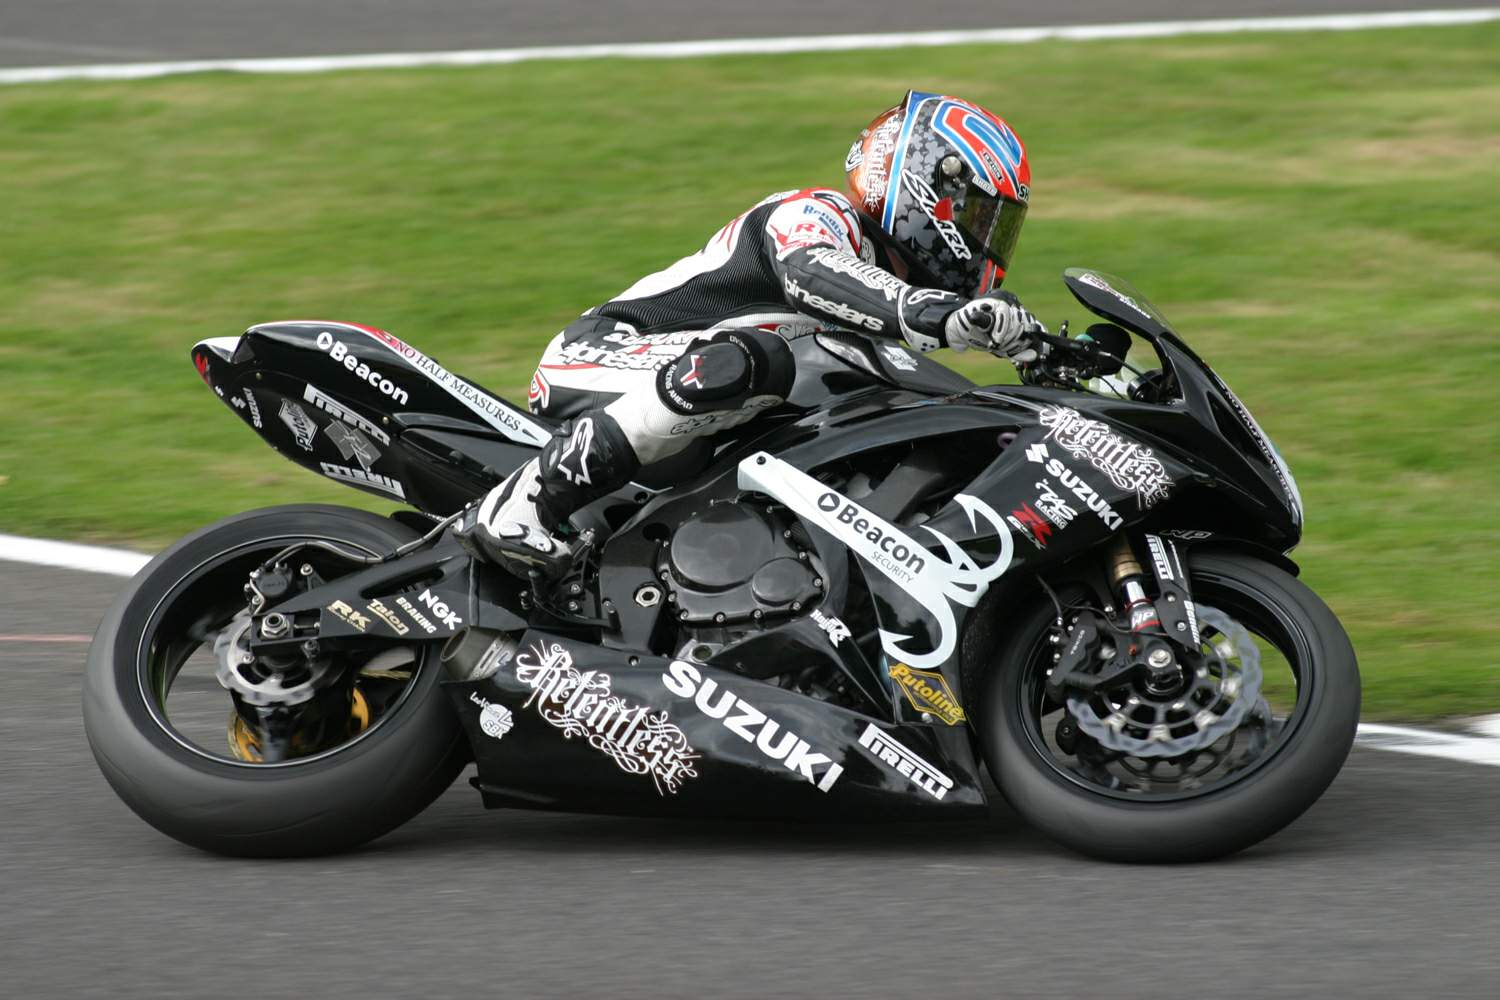 Suzuki GSX-R 750 Relentless      Replicas For Sale Specifications, Price and Images